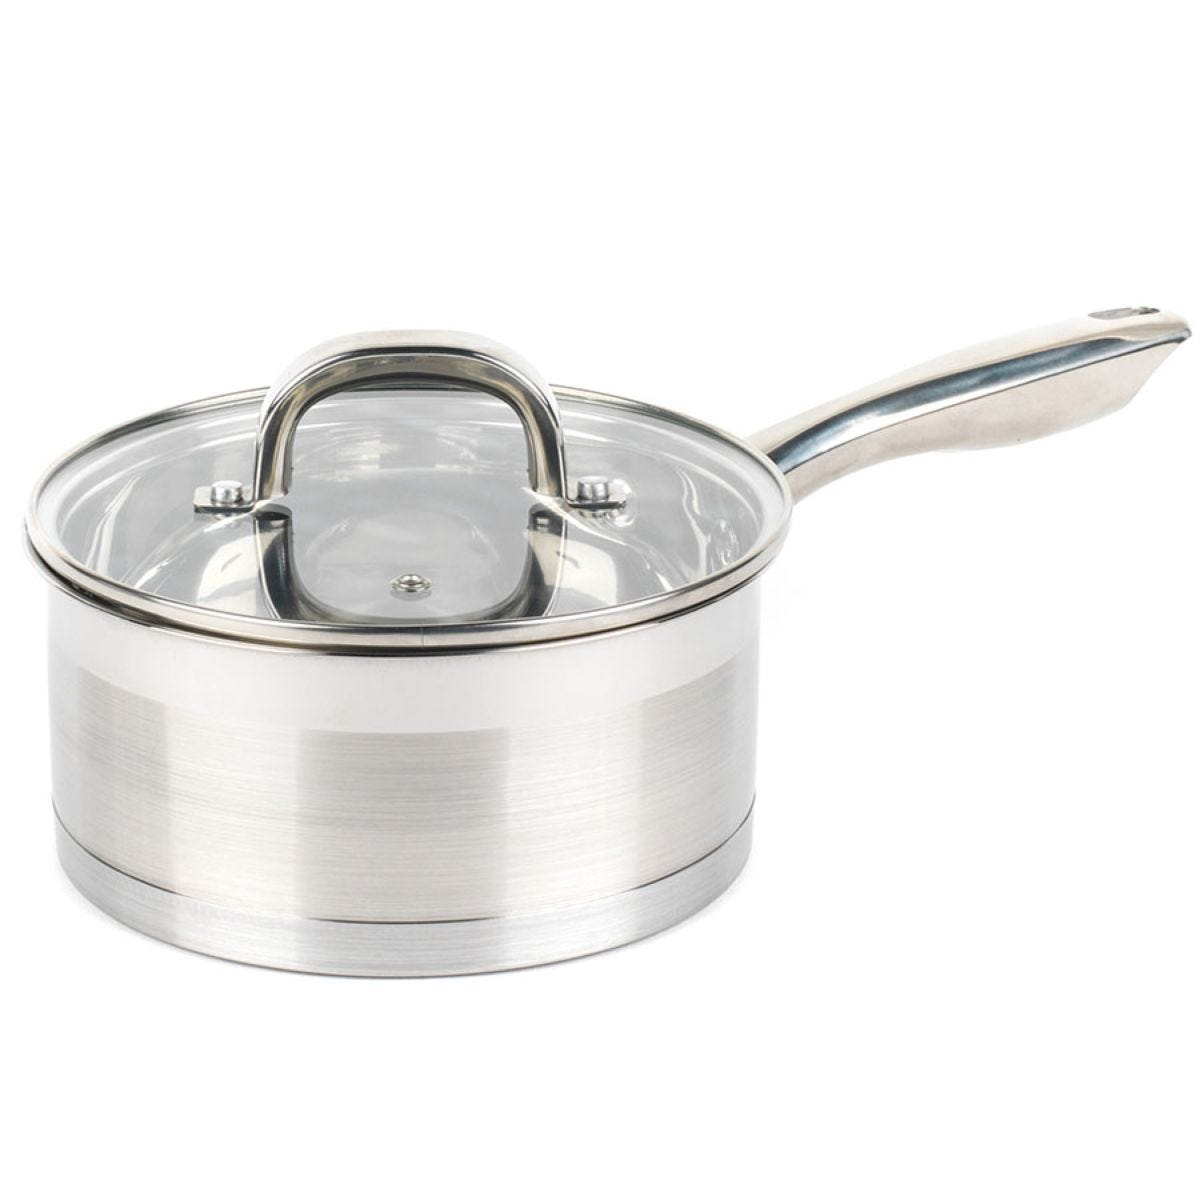 Salter 20cm Timeless Collection Saucepan - Stainless Steel